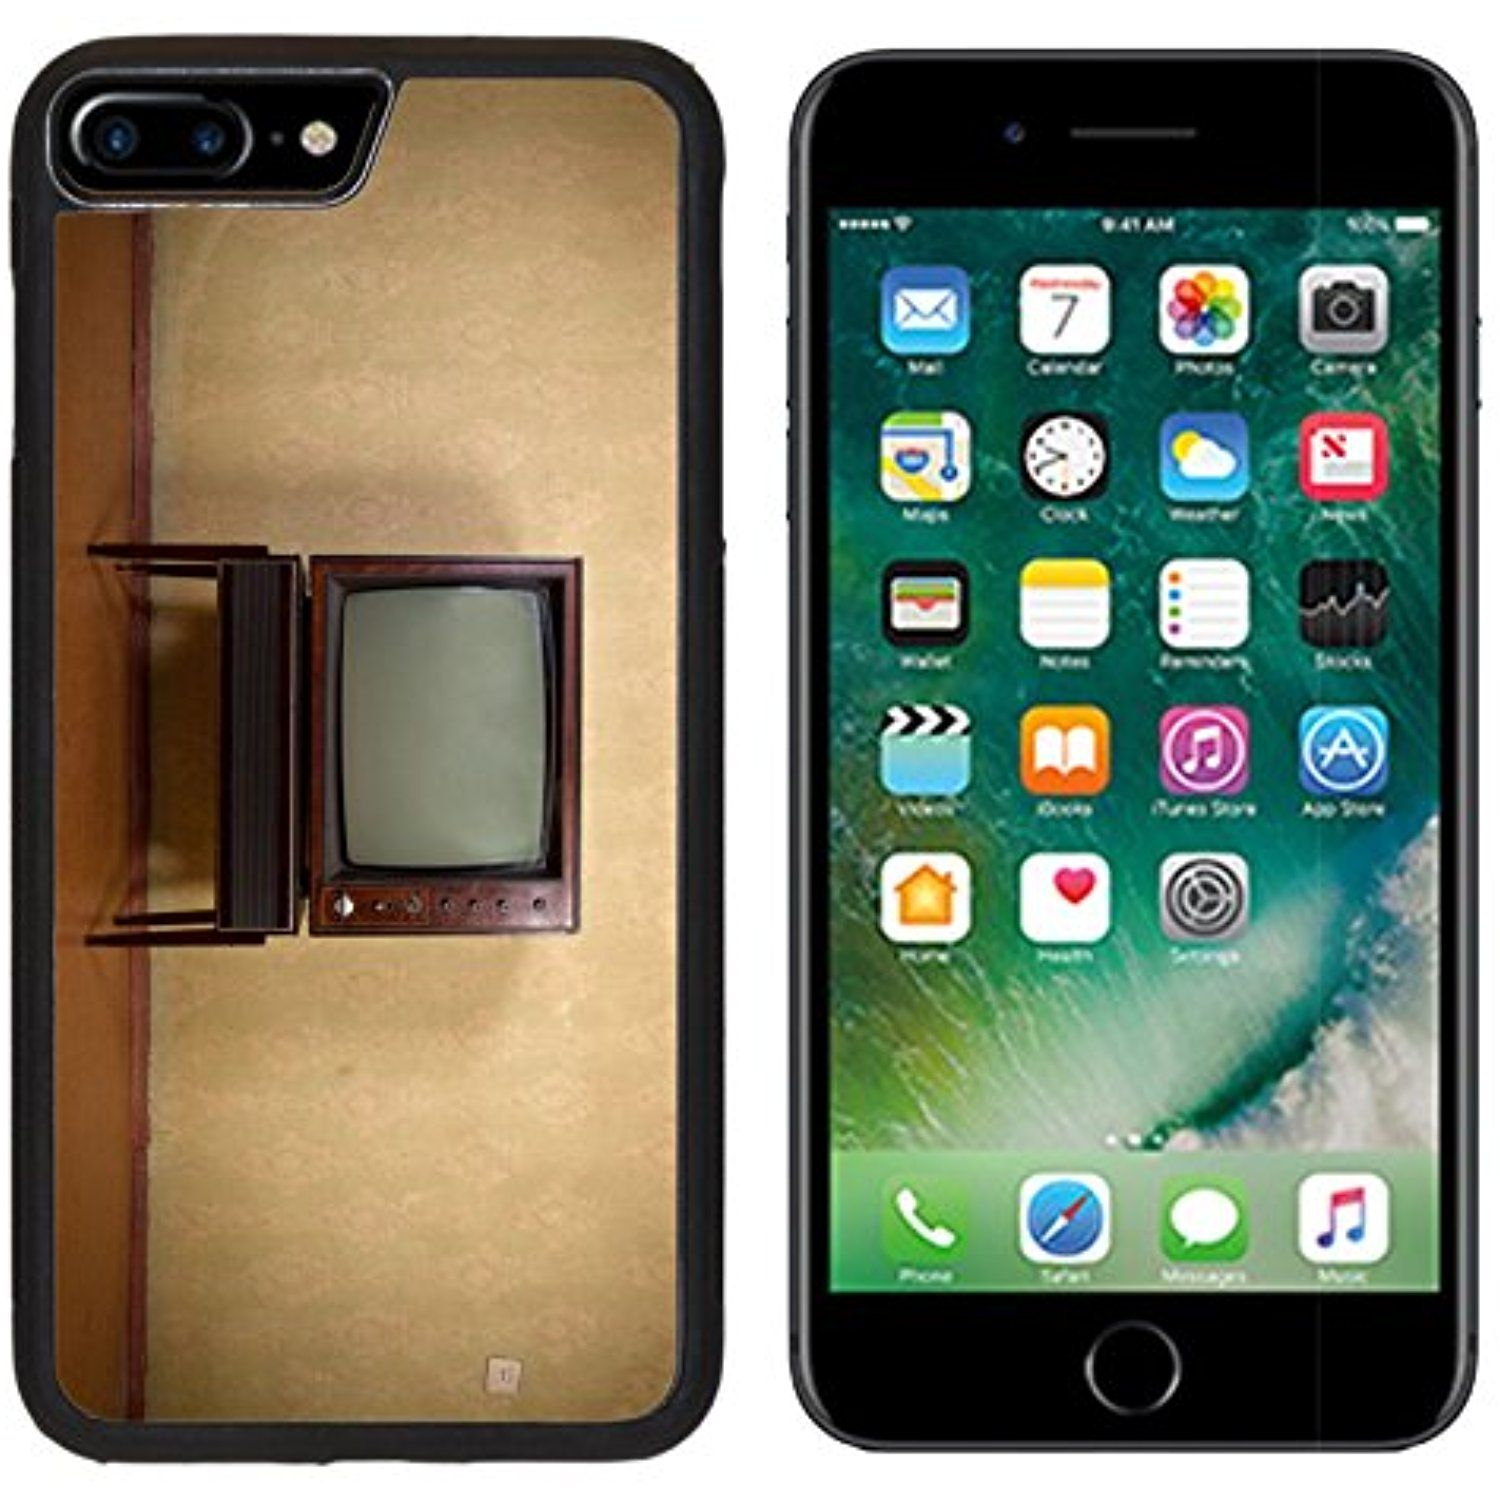 MSD Premium Apple IPhone 7 Plus Aluminum Backplate Bumper Snap Case IMAGE 26503802 Retro TV On A Background Of Vintage Wallpaper In Old Room With Vignetting